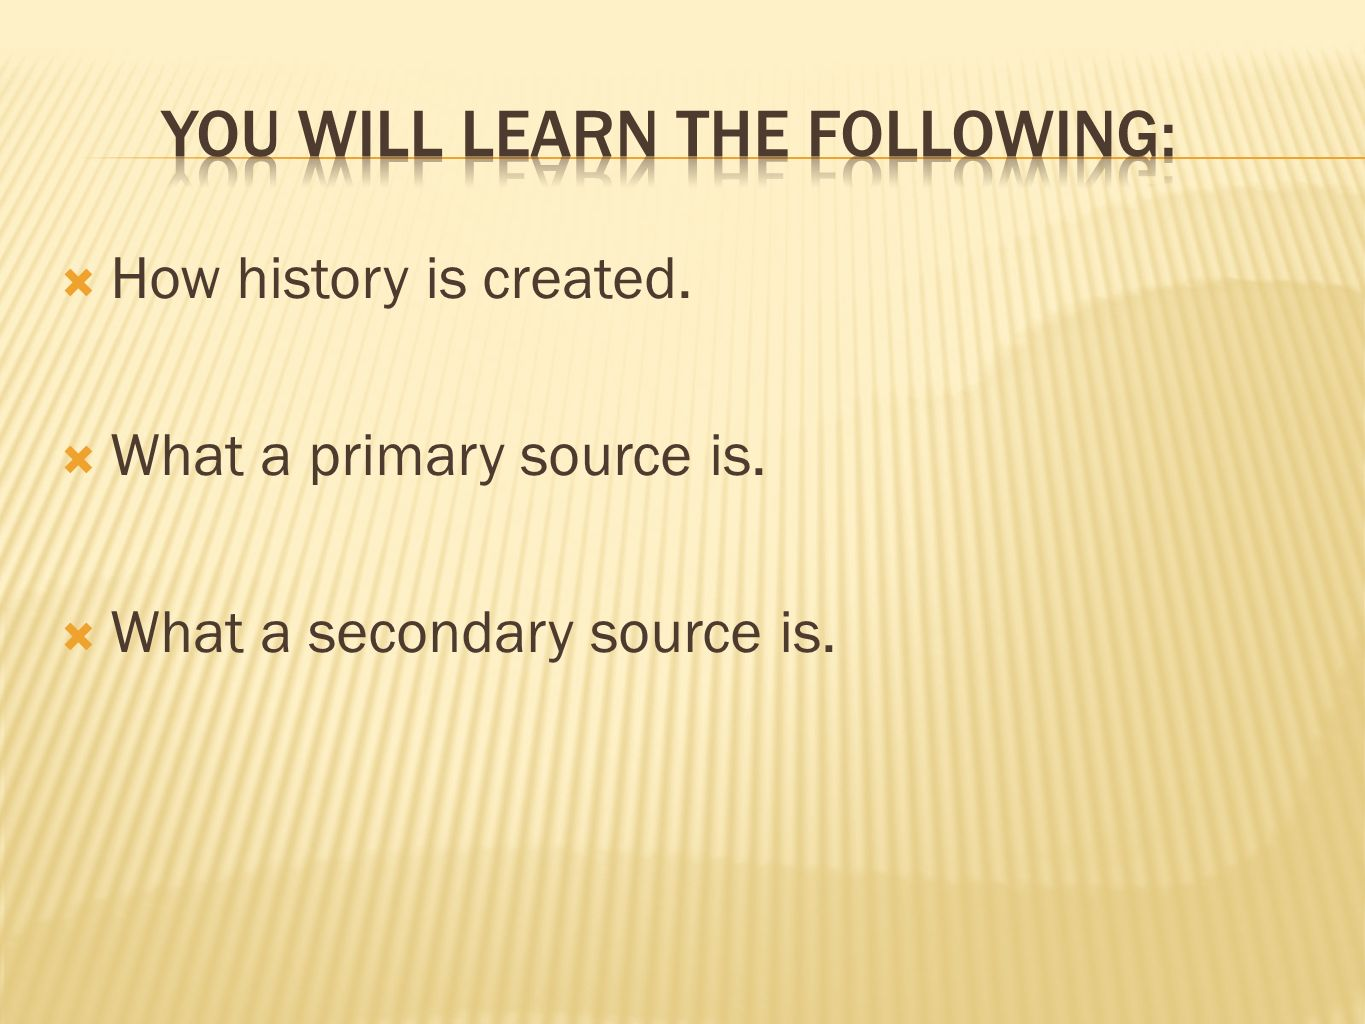 You will learn the following: